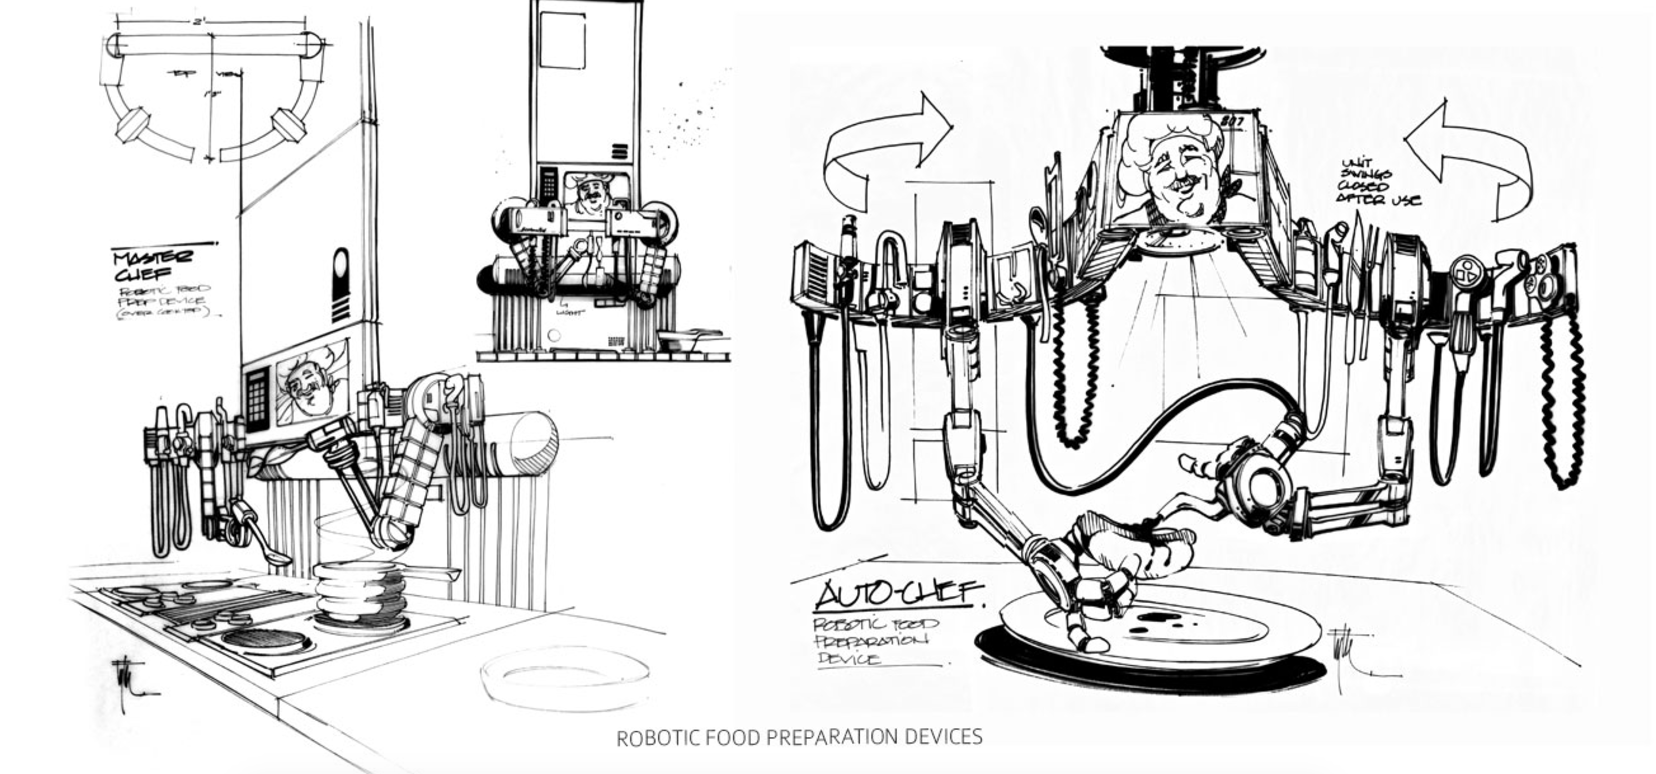 Edward Eyth Design sketching Back to the future II Robotic Food Preparation devices